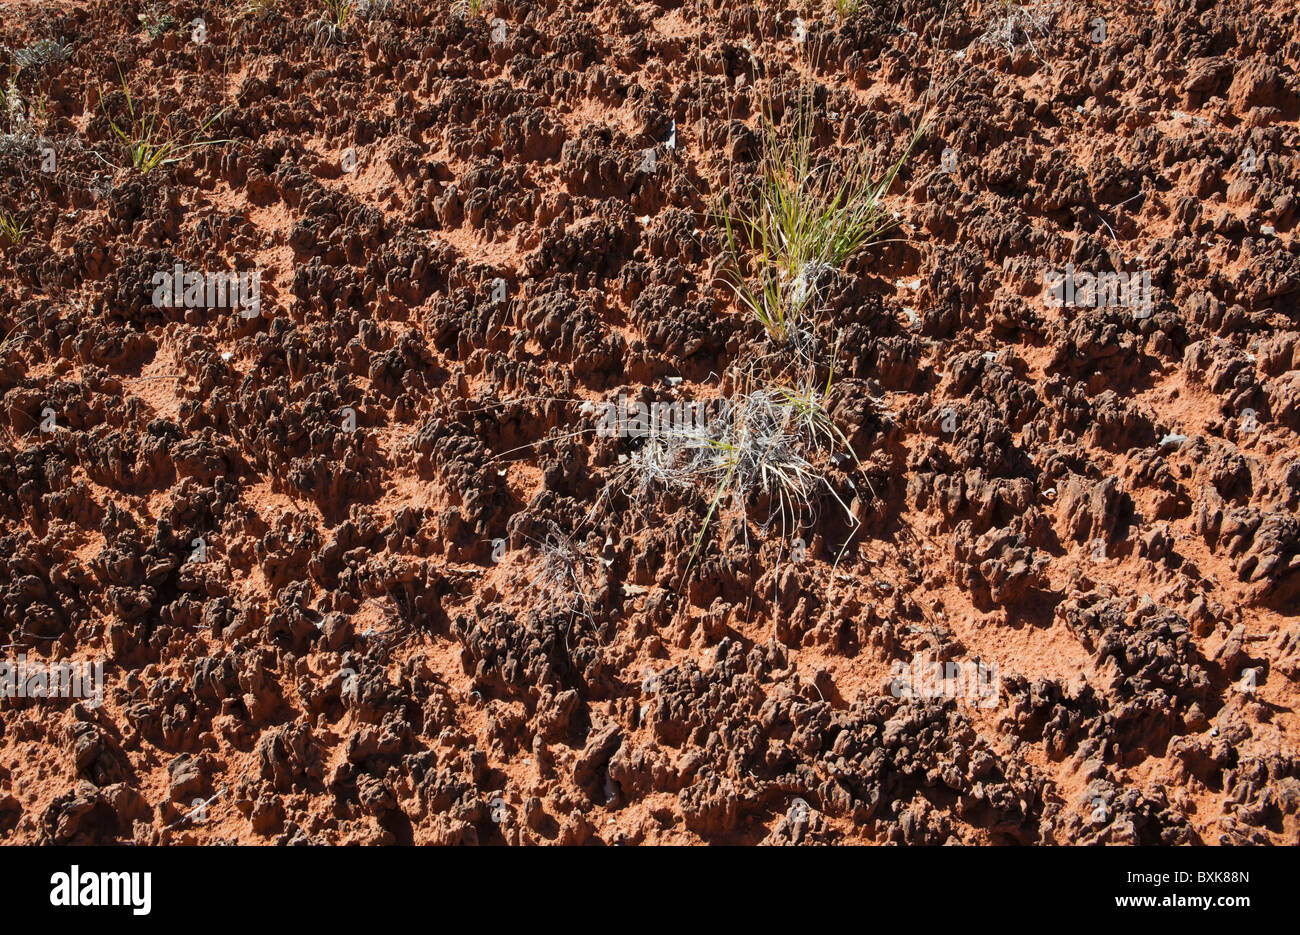 Closeup of cryptobiotic soil in Canyonlands National Park, Needles District, Utah, USA. - Stock Image